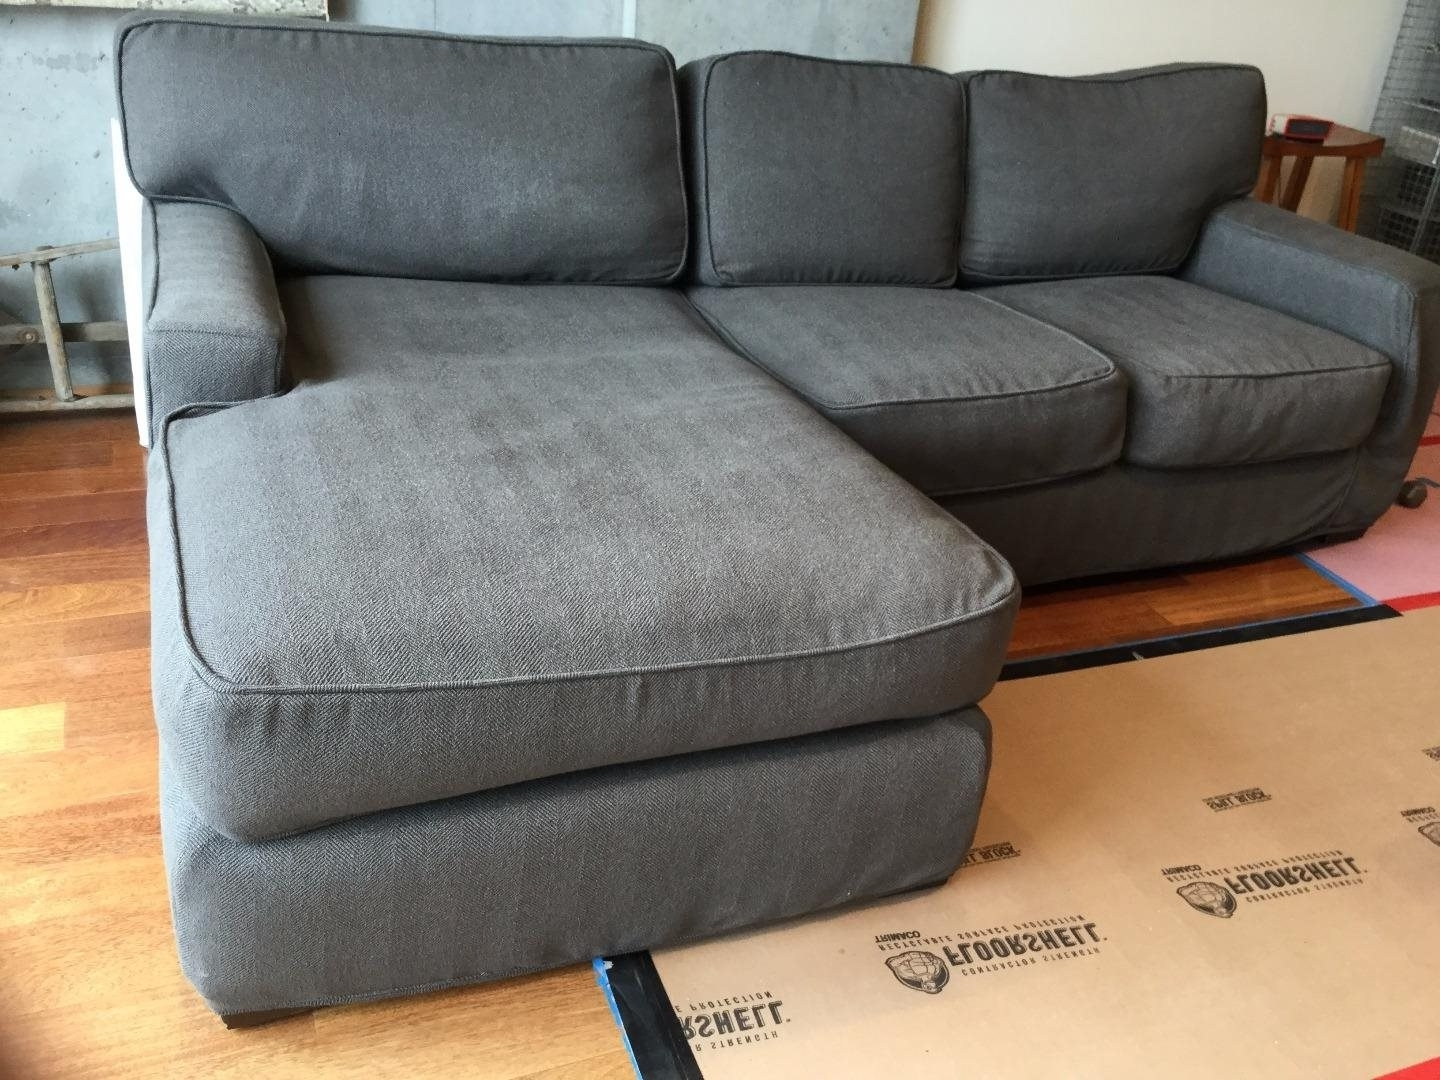 Preferred Quatrine Sectional Sofas Throughout Quatrine Upholstered Sectional Sofa: For Sale In San Francisco, Ca (View 5 of 15)